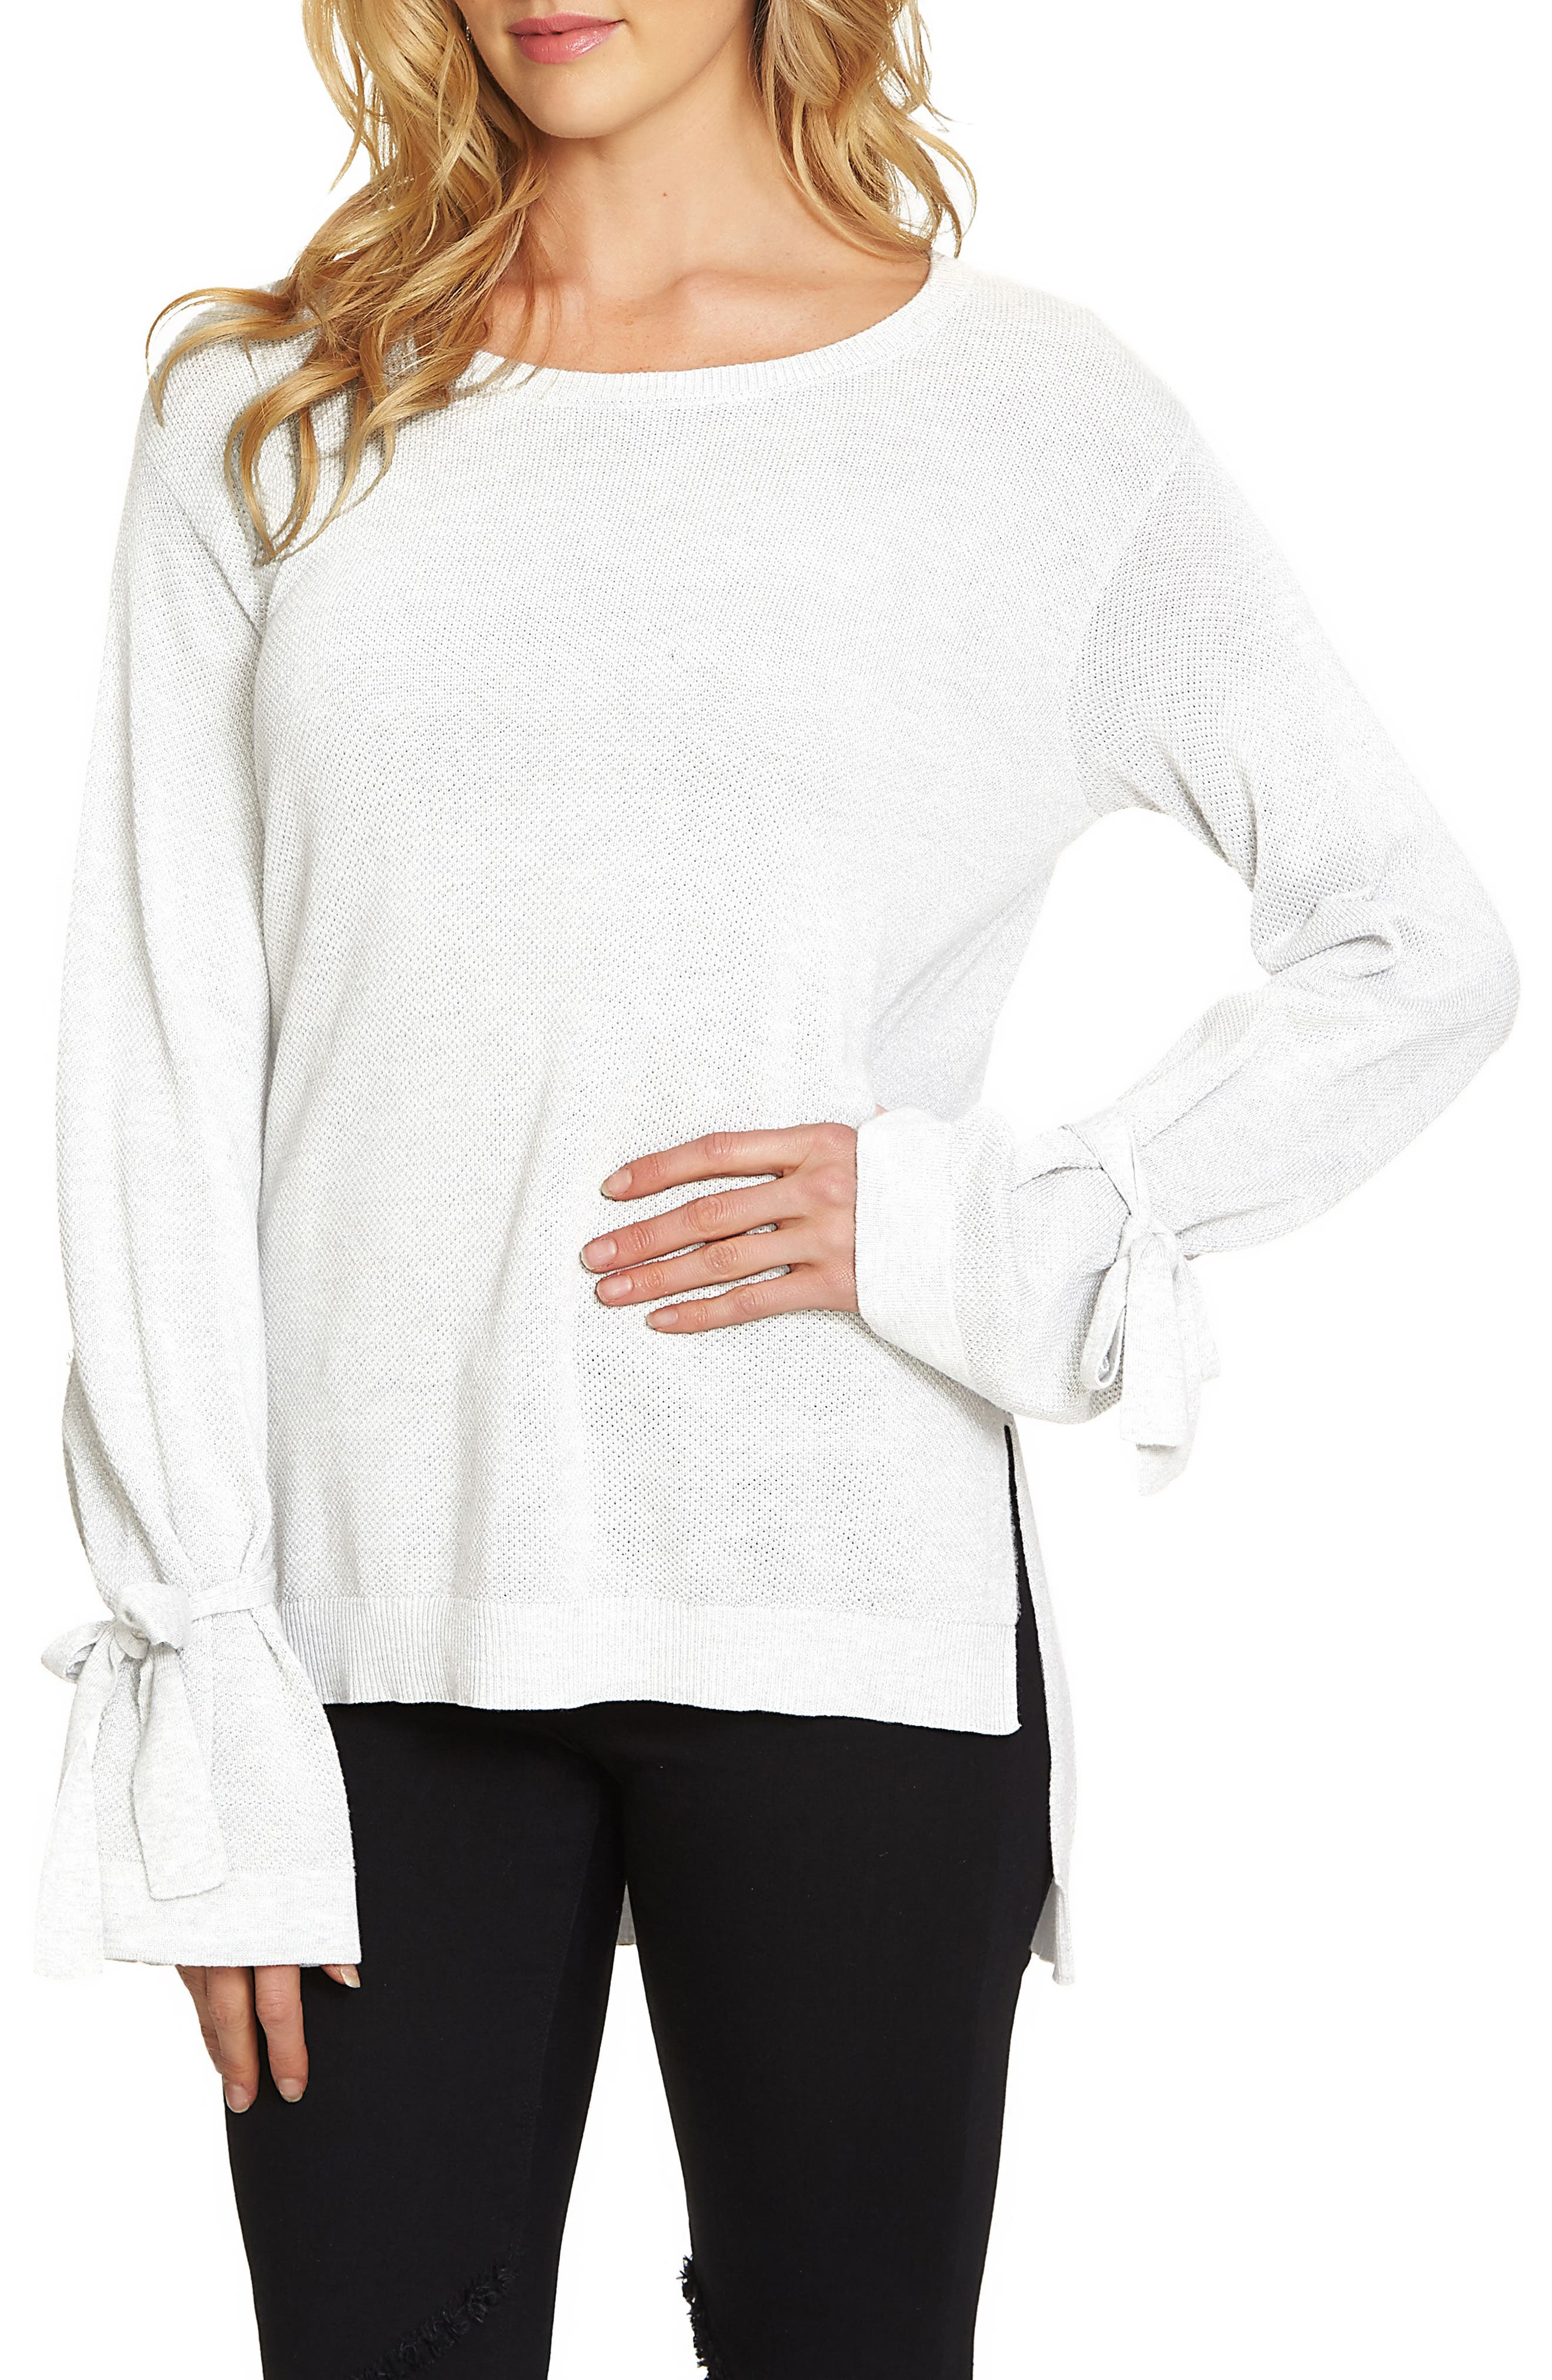 Alternate Image 1 Selected - 1.STATE Tie Sleeve Sweater